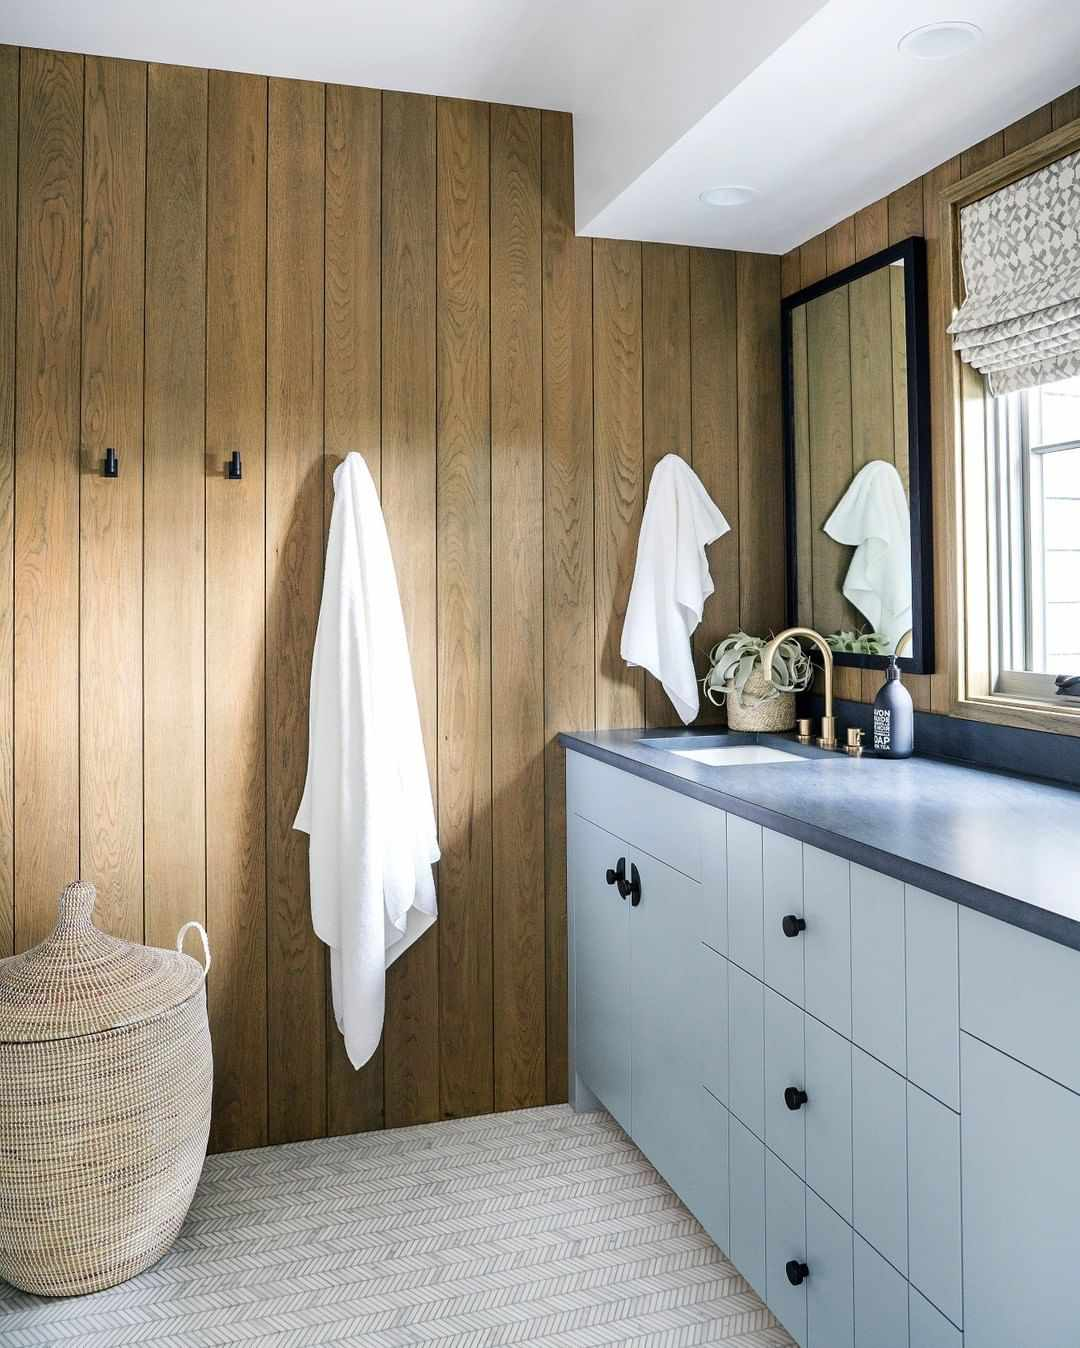 Rustic bathroom with mid century details